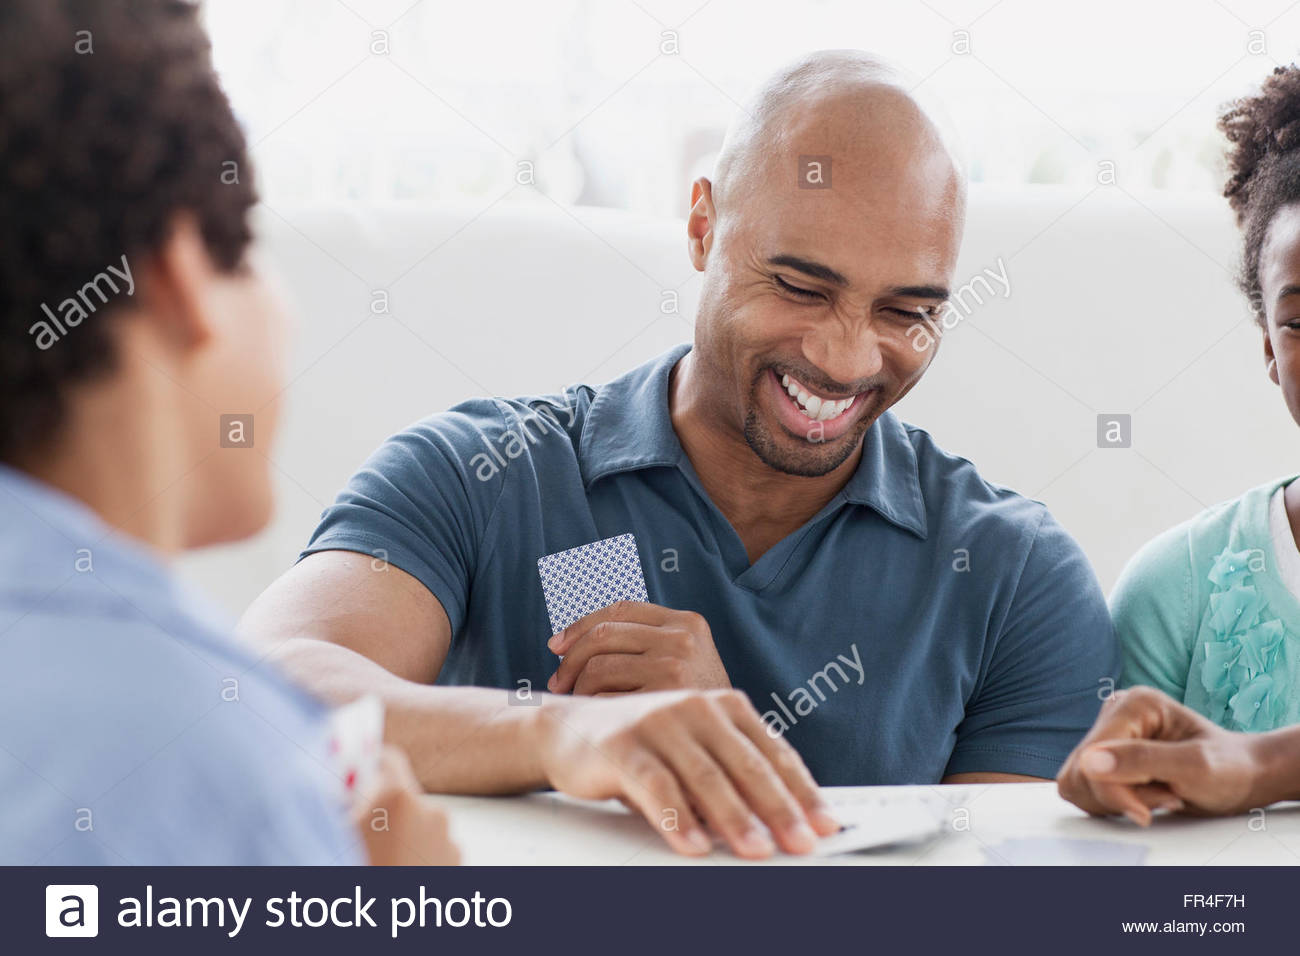 father laughing as he plays cards with son and daughter - Stock Image